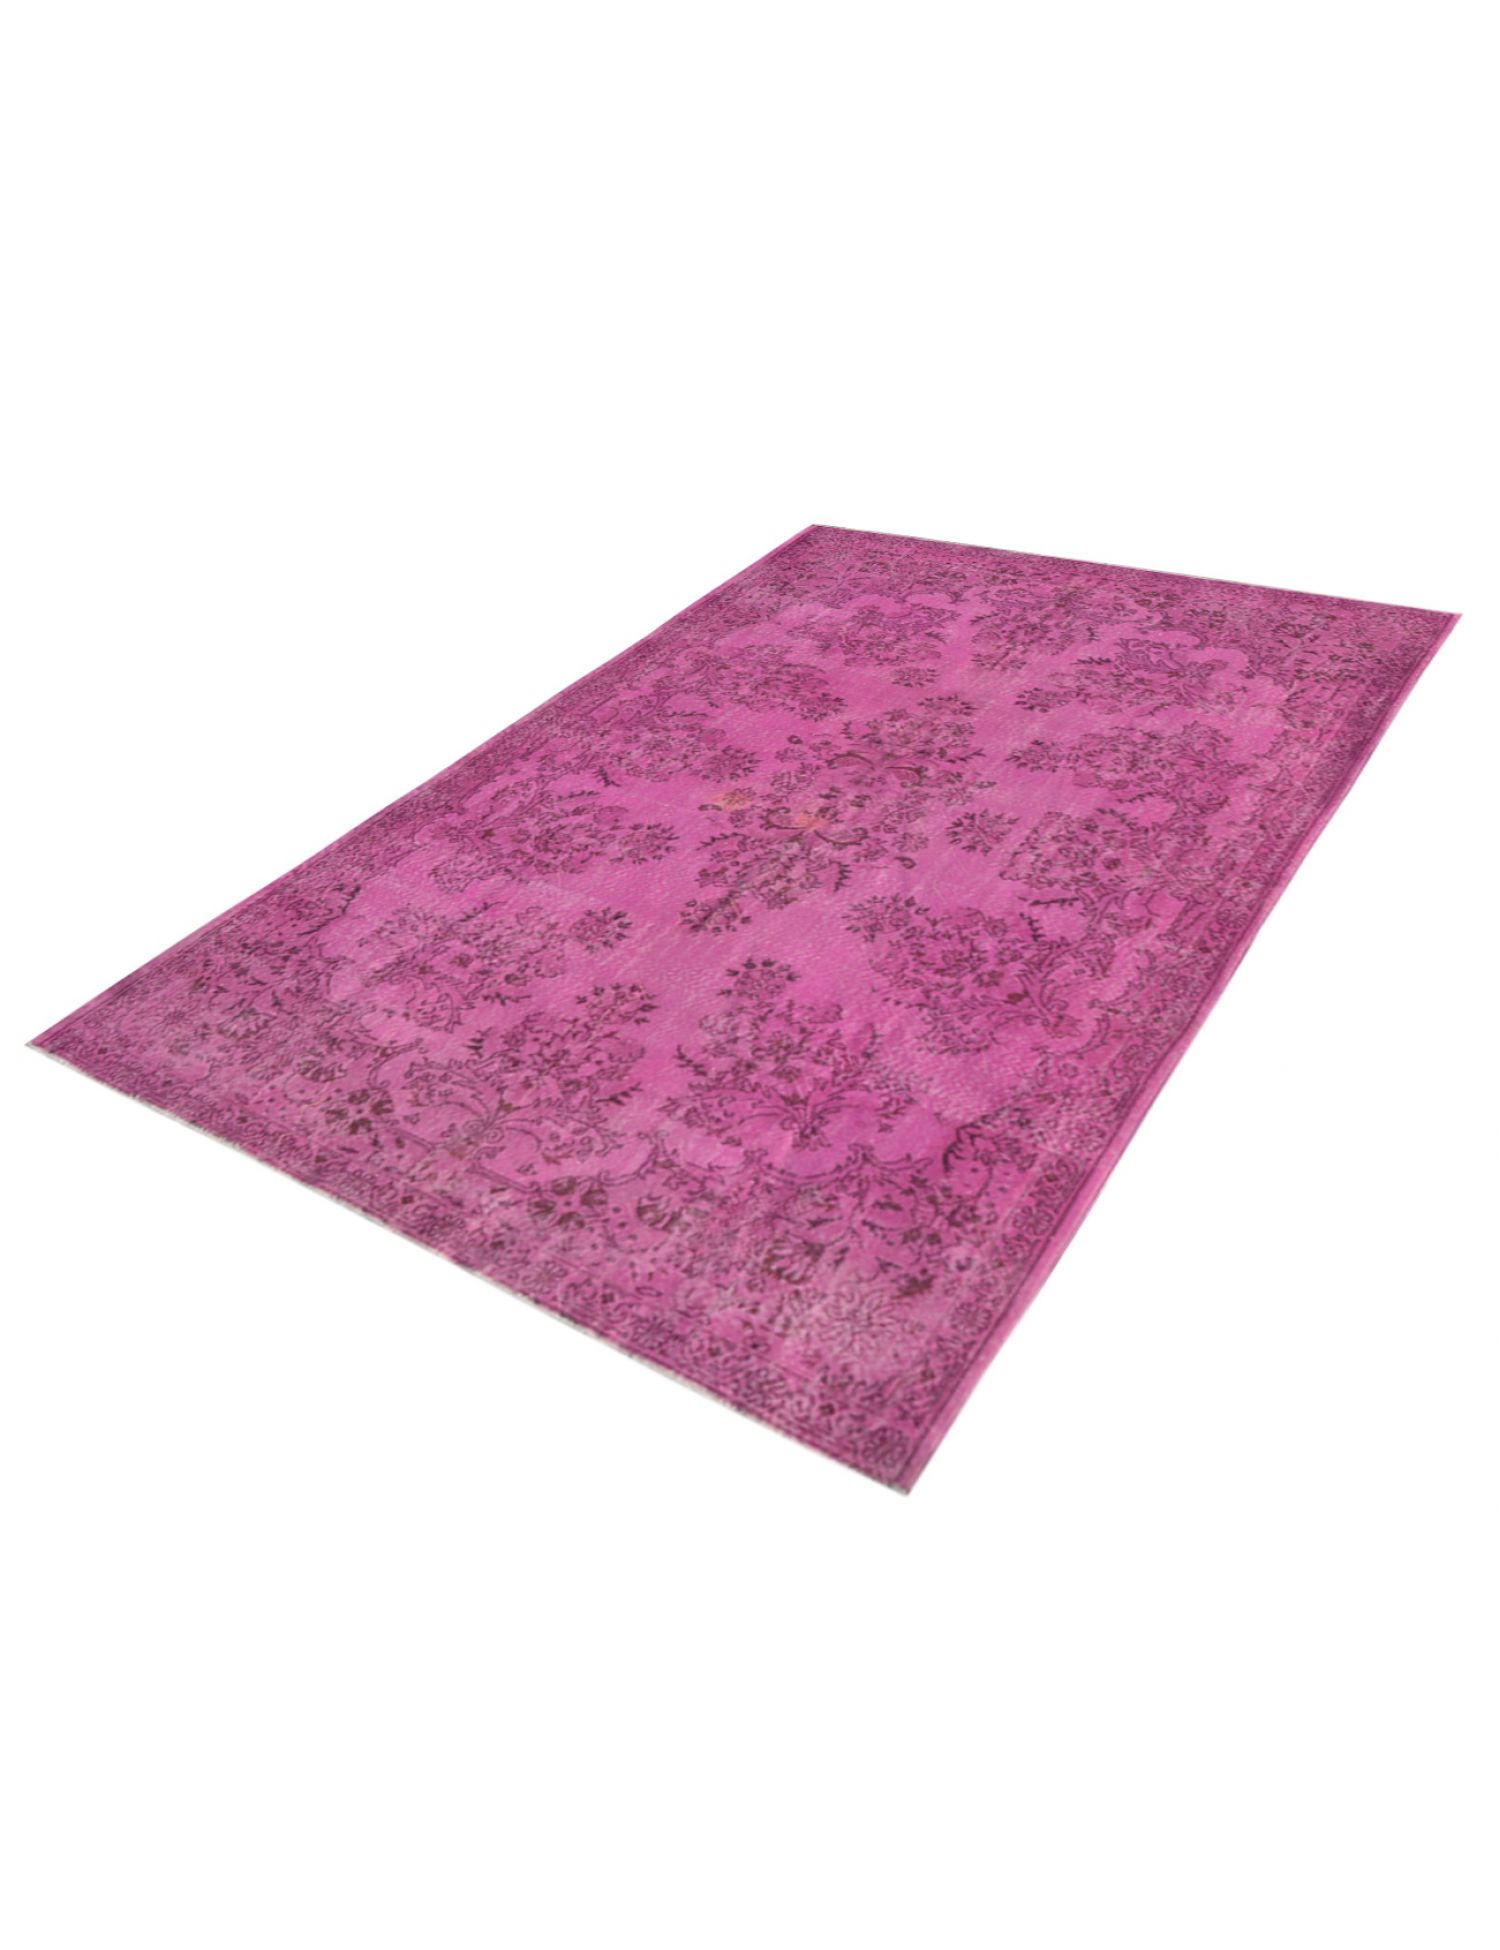 Vintage Carpet  purple <br/>314 x 227 cm